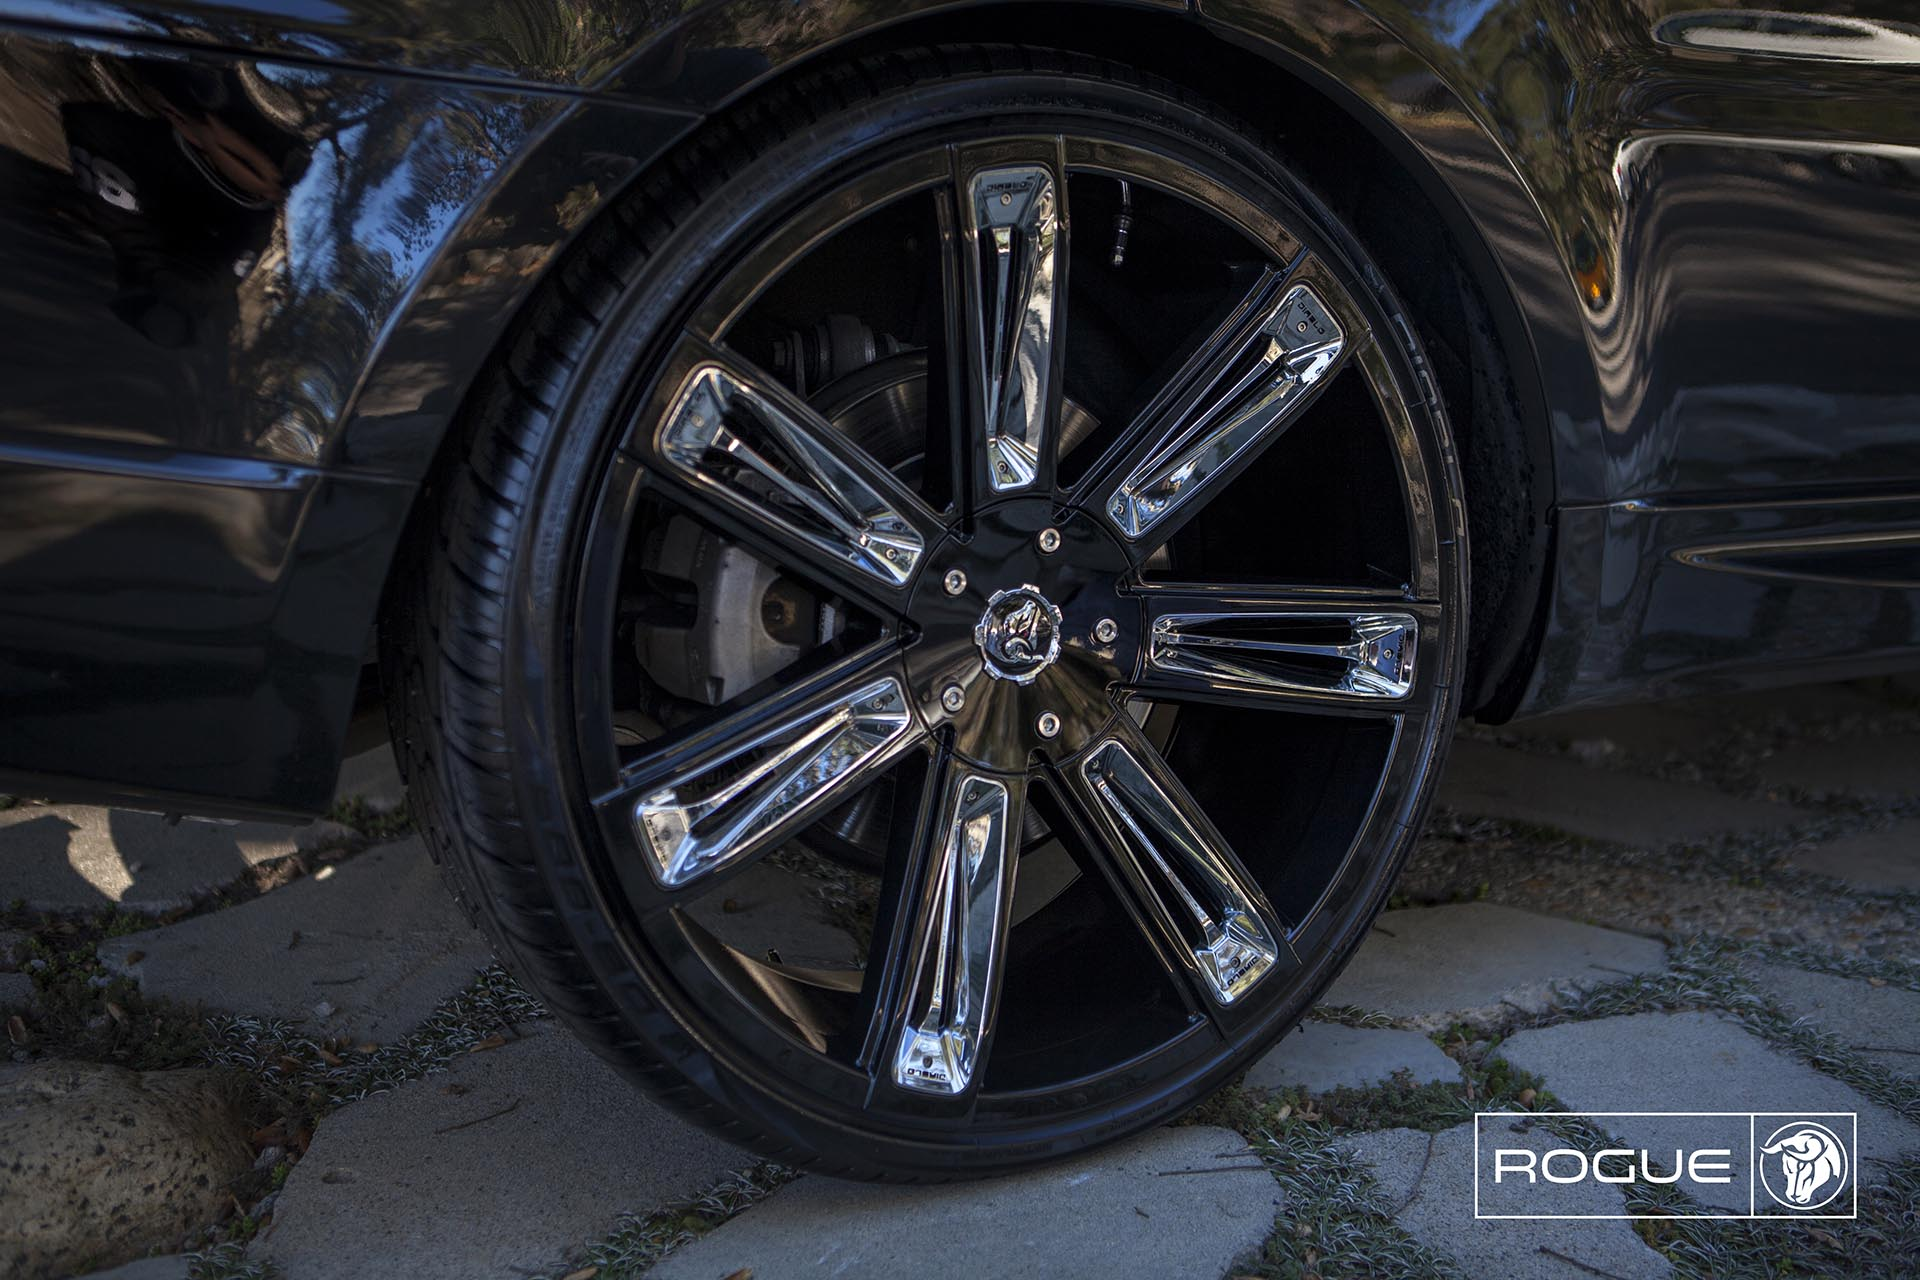 Black Diablo Rogue Wheels on a Land Rover Range Rover